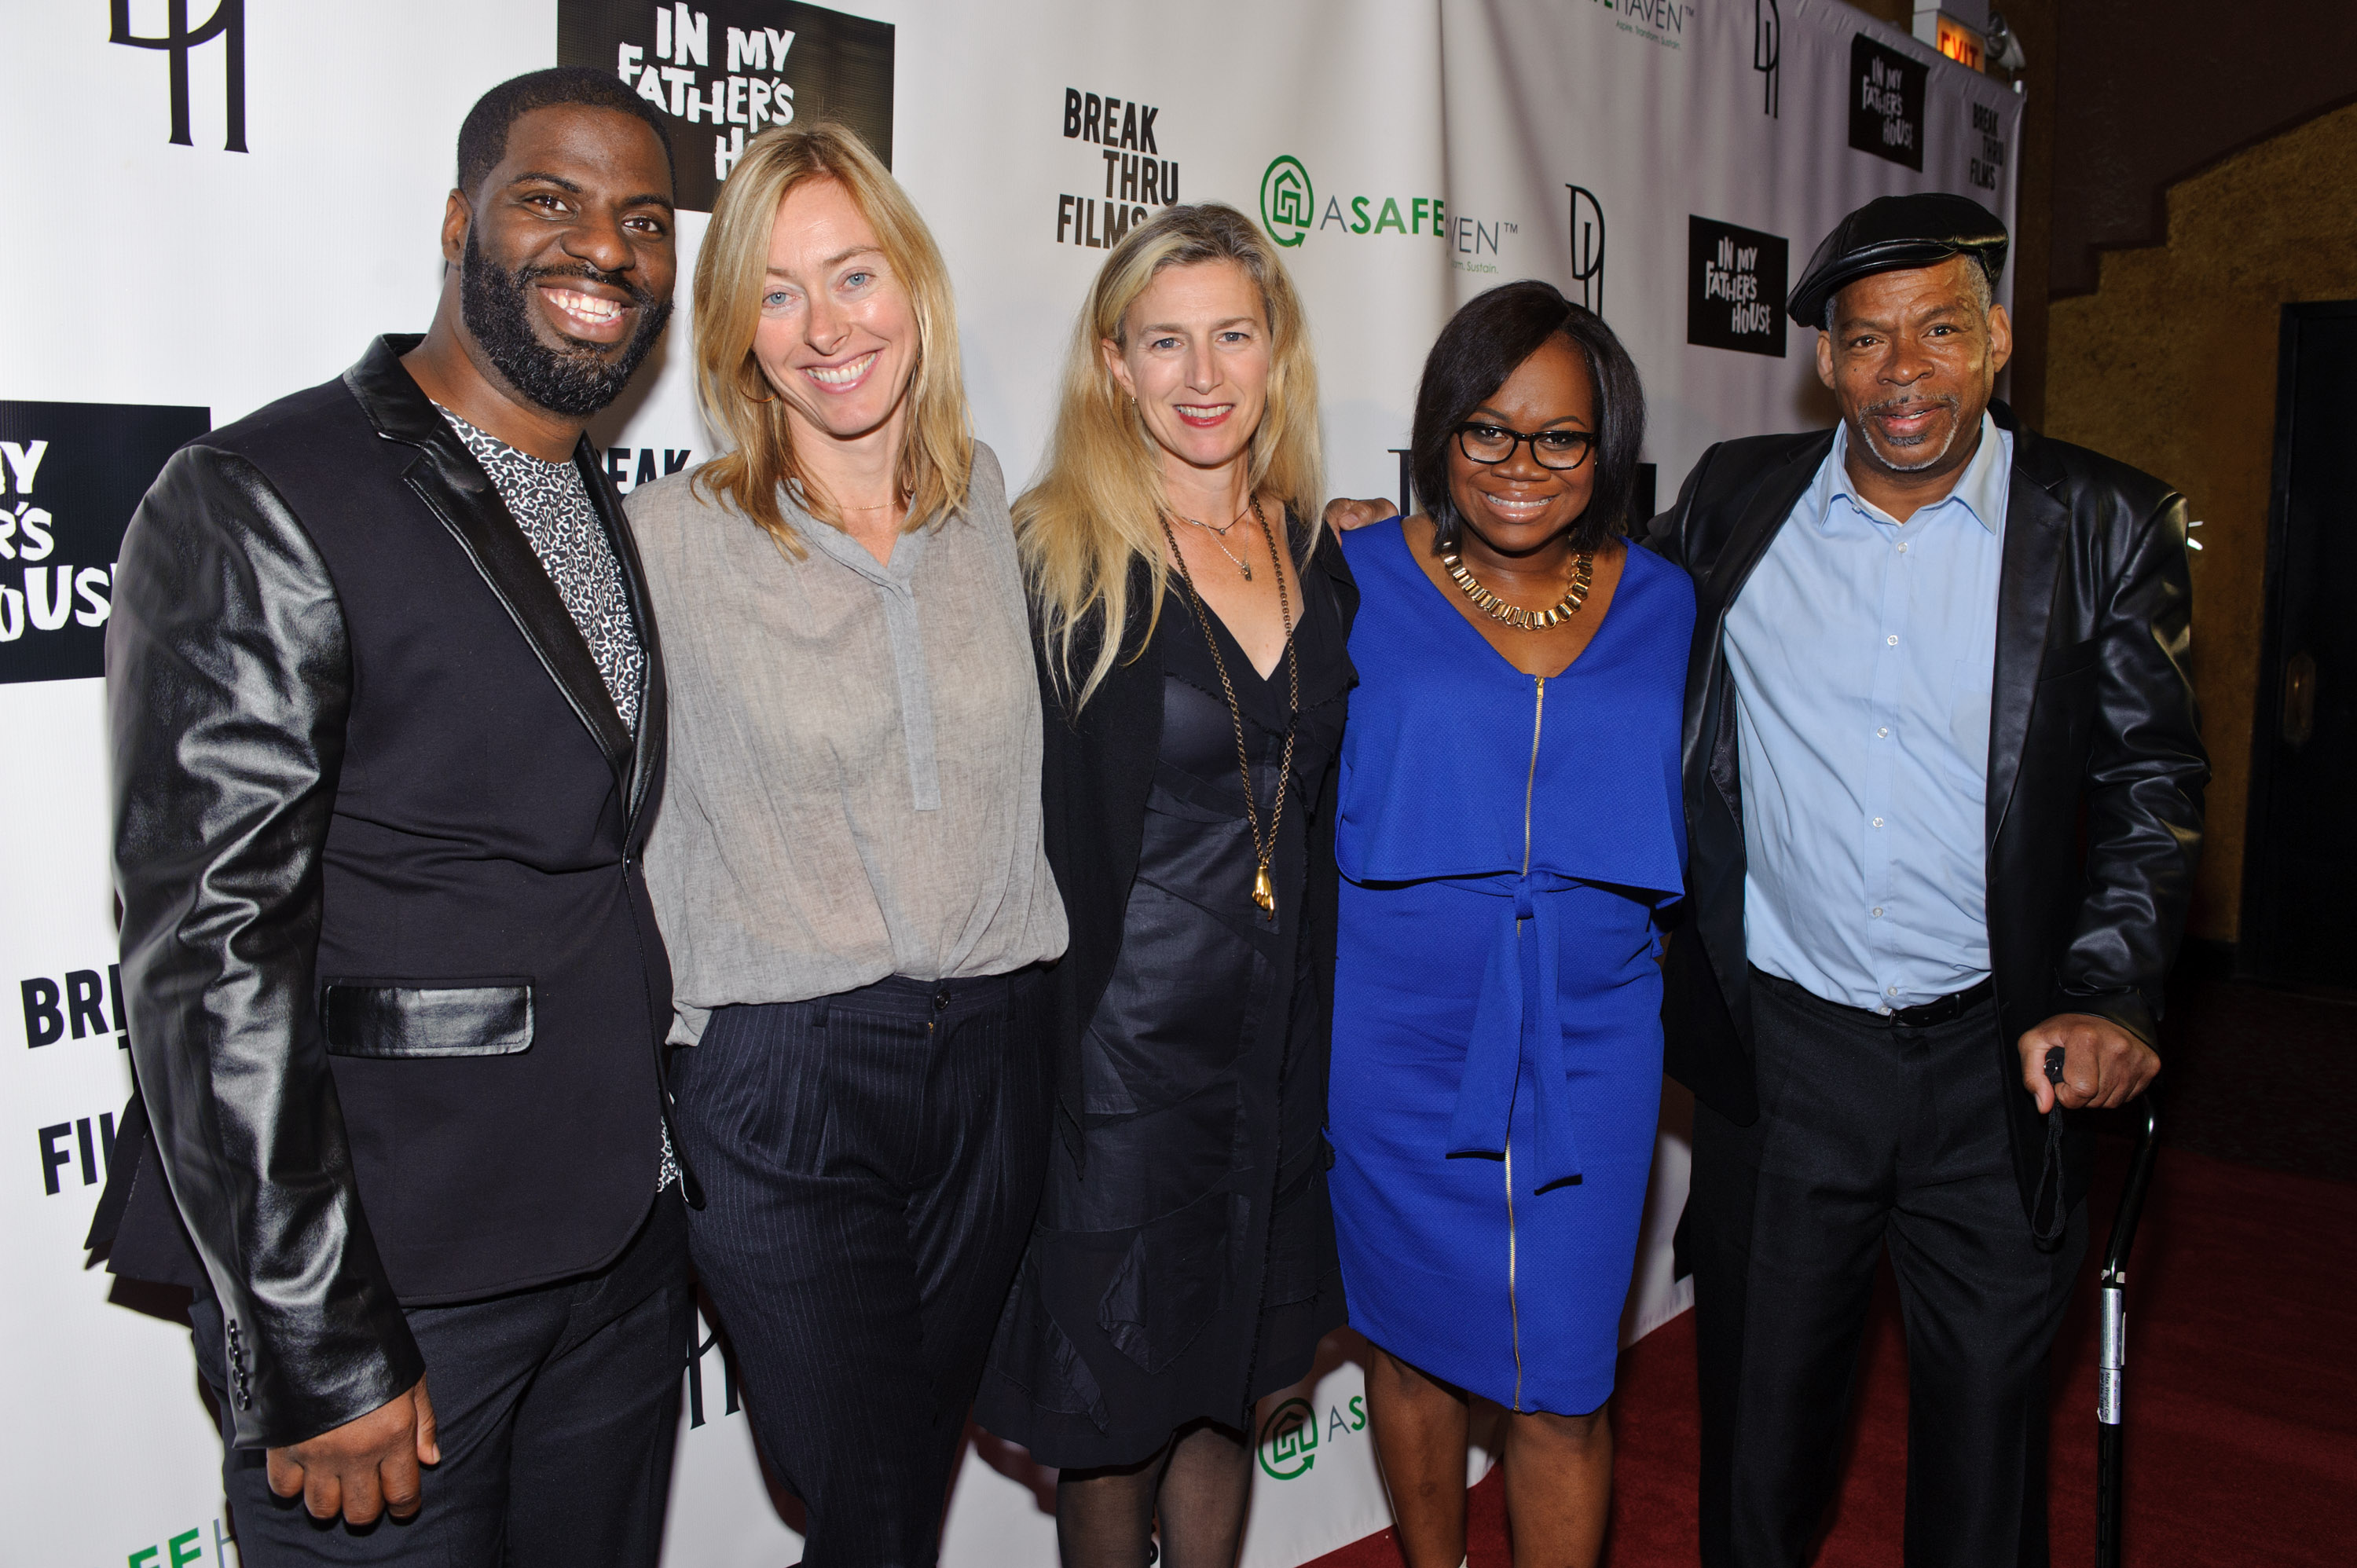 'In My Father's House' Chicago Premiere